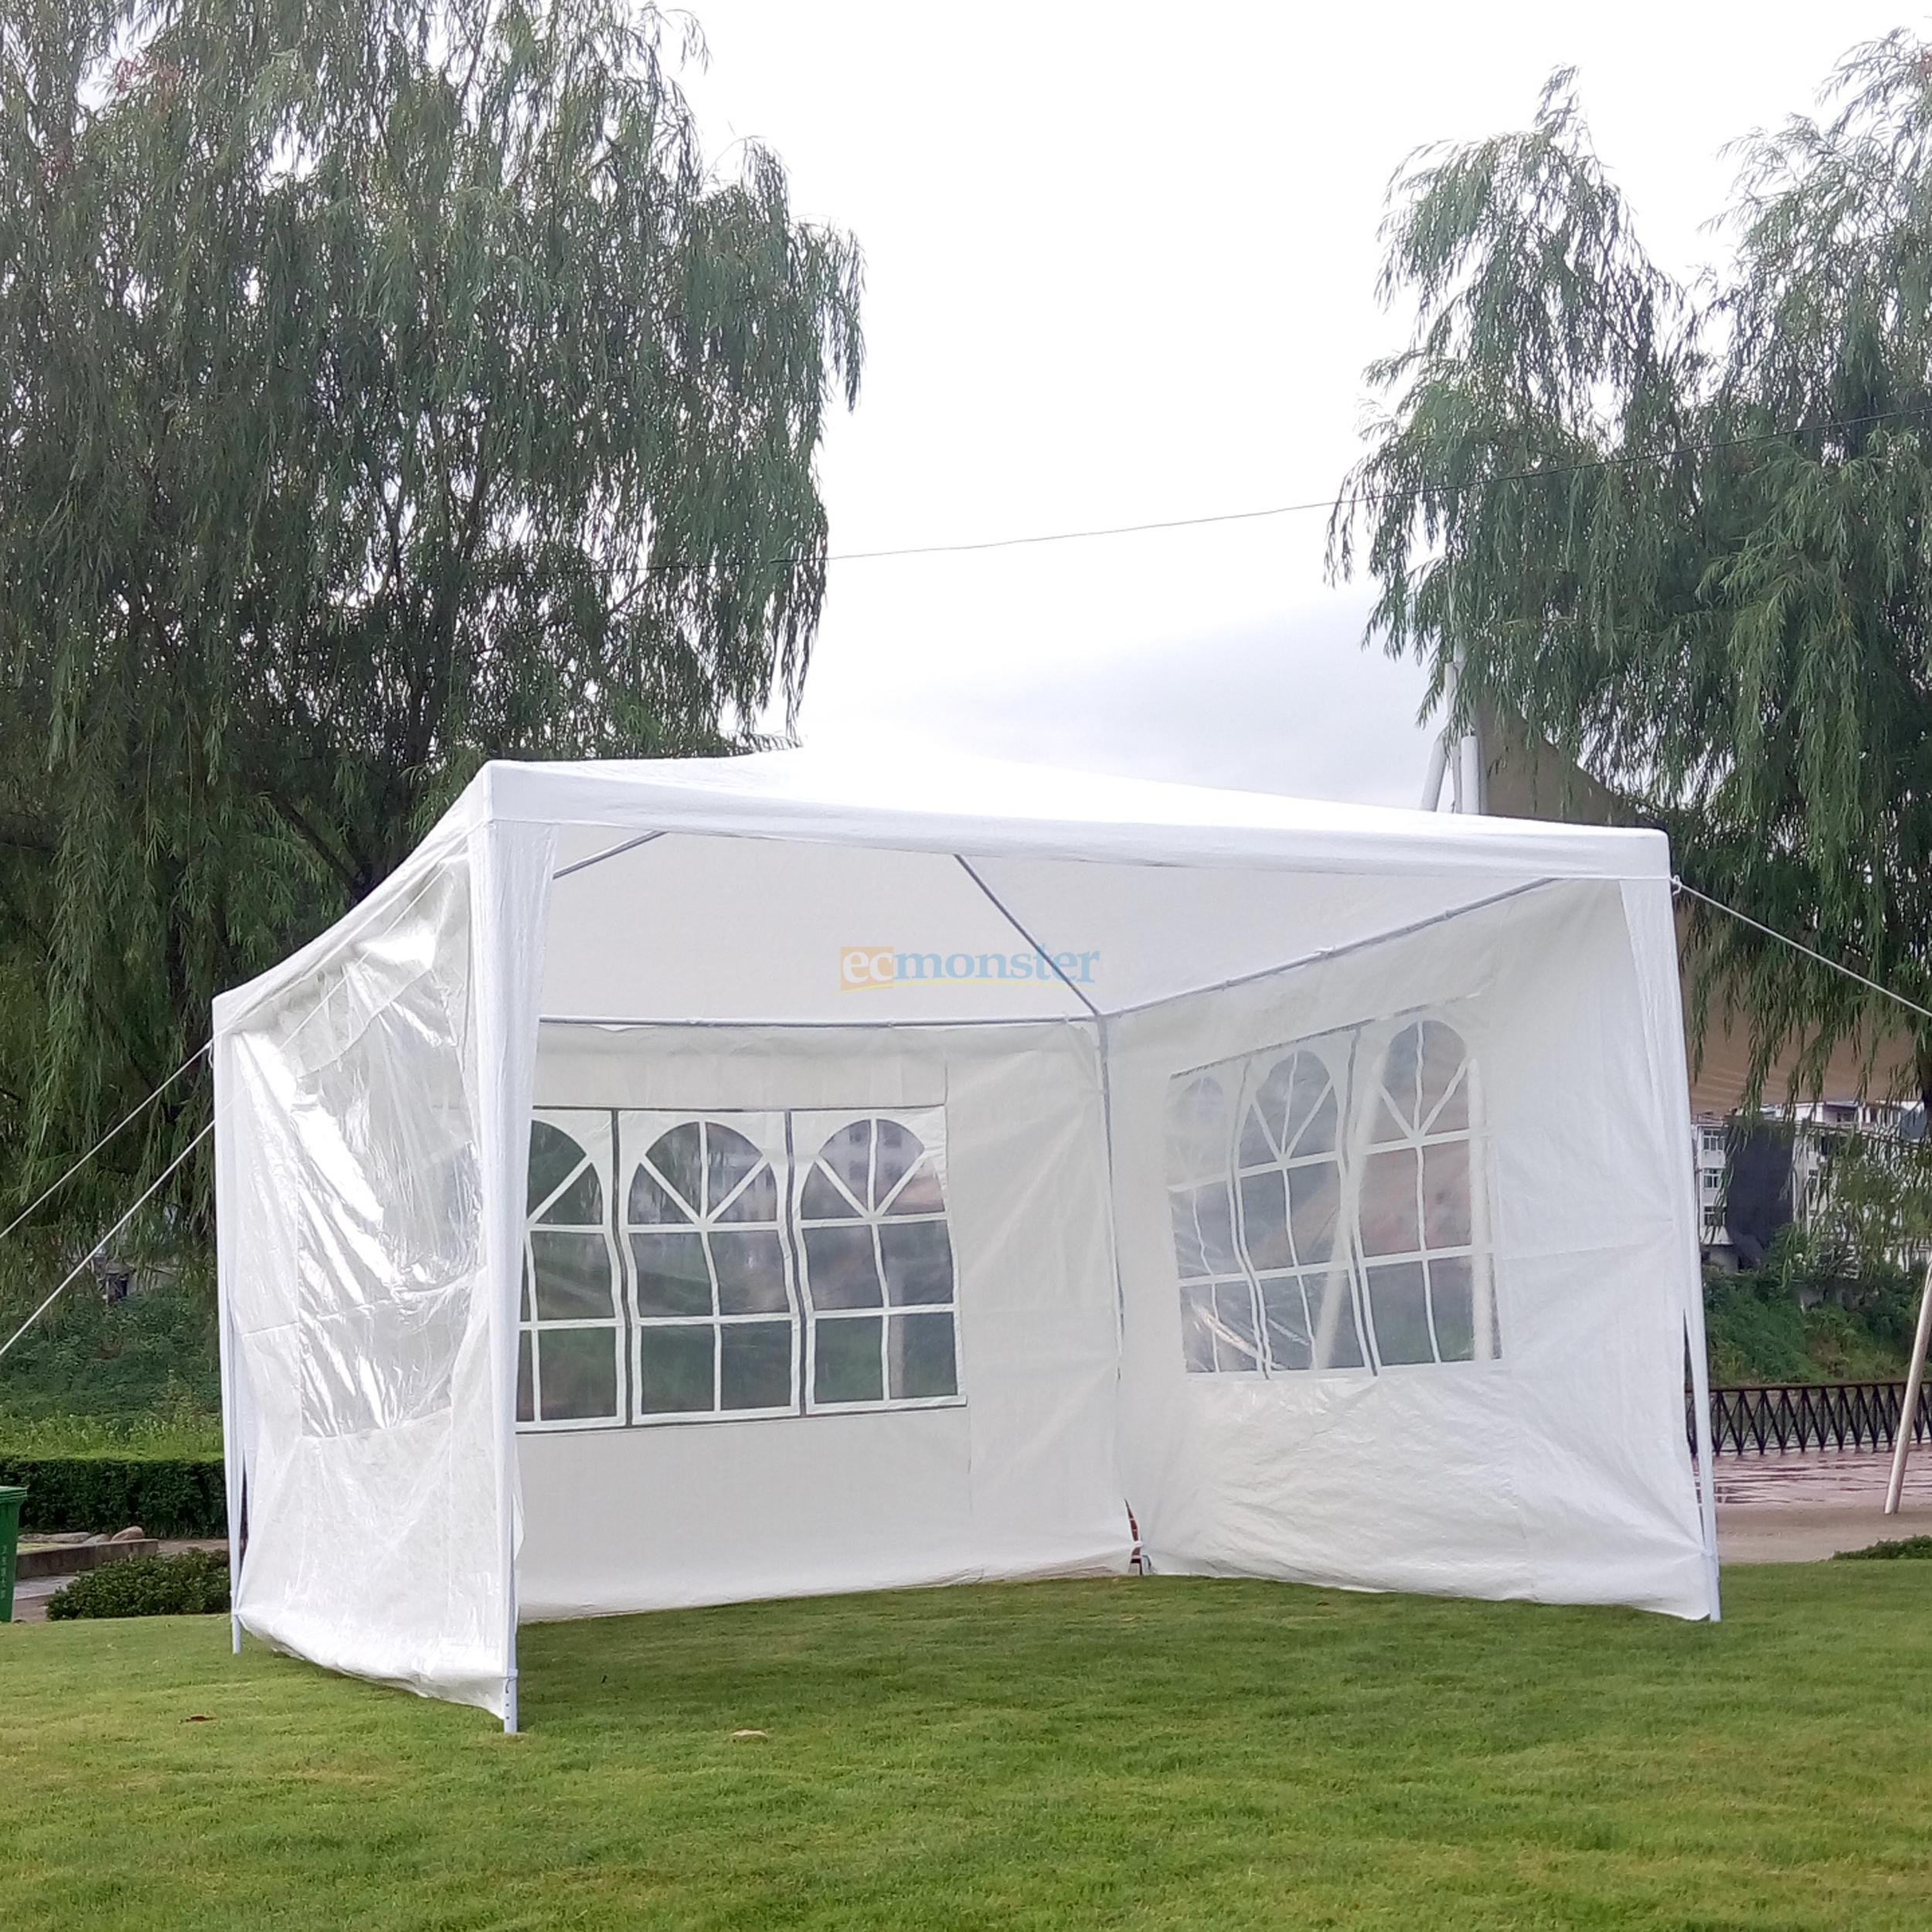 X10 Outdoor Lighting: Outdoor 10'x10'Canopy Party Wedding Tent Gazebo Pavilion